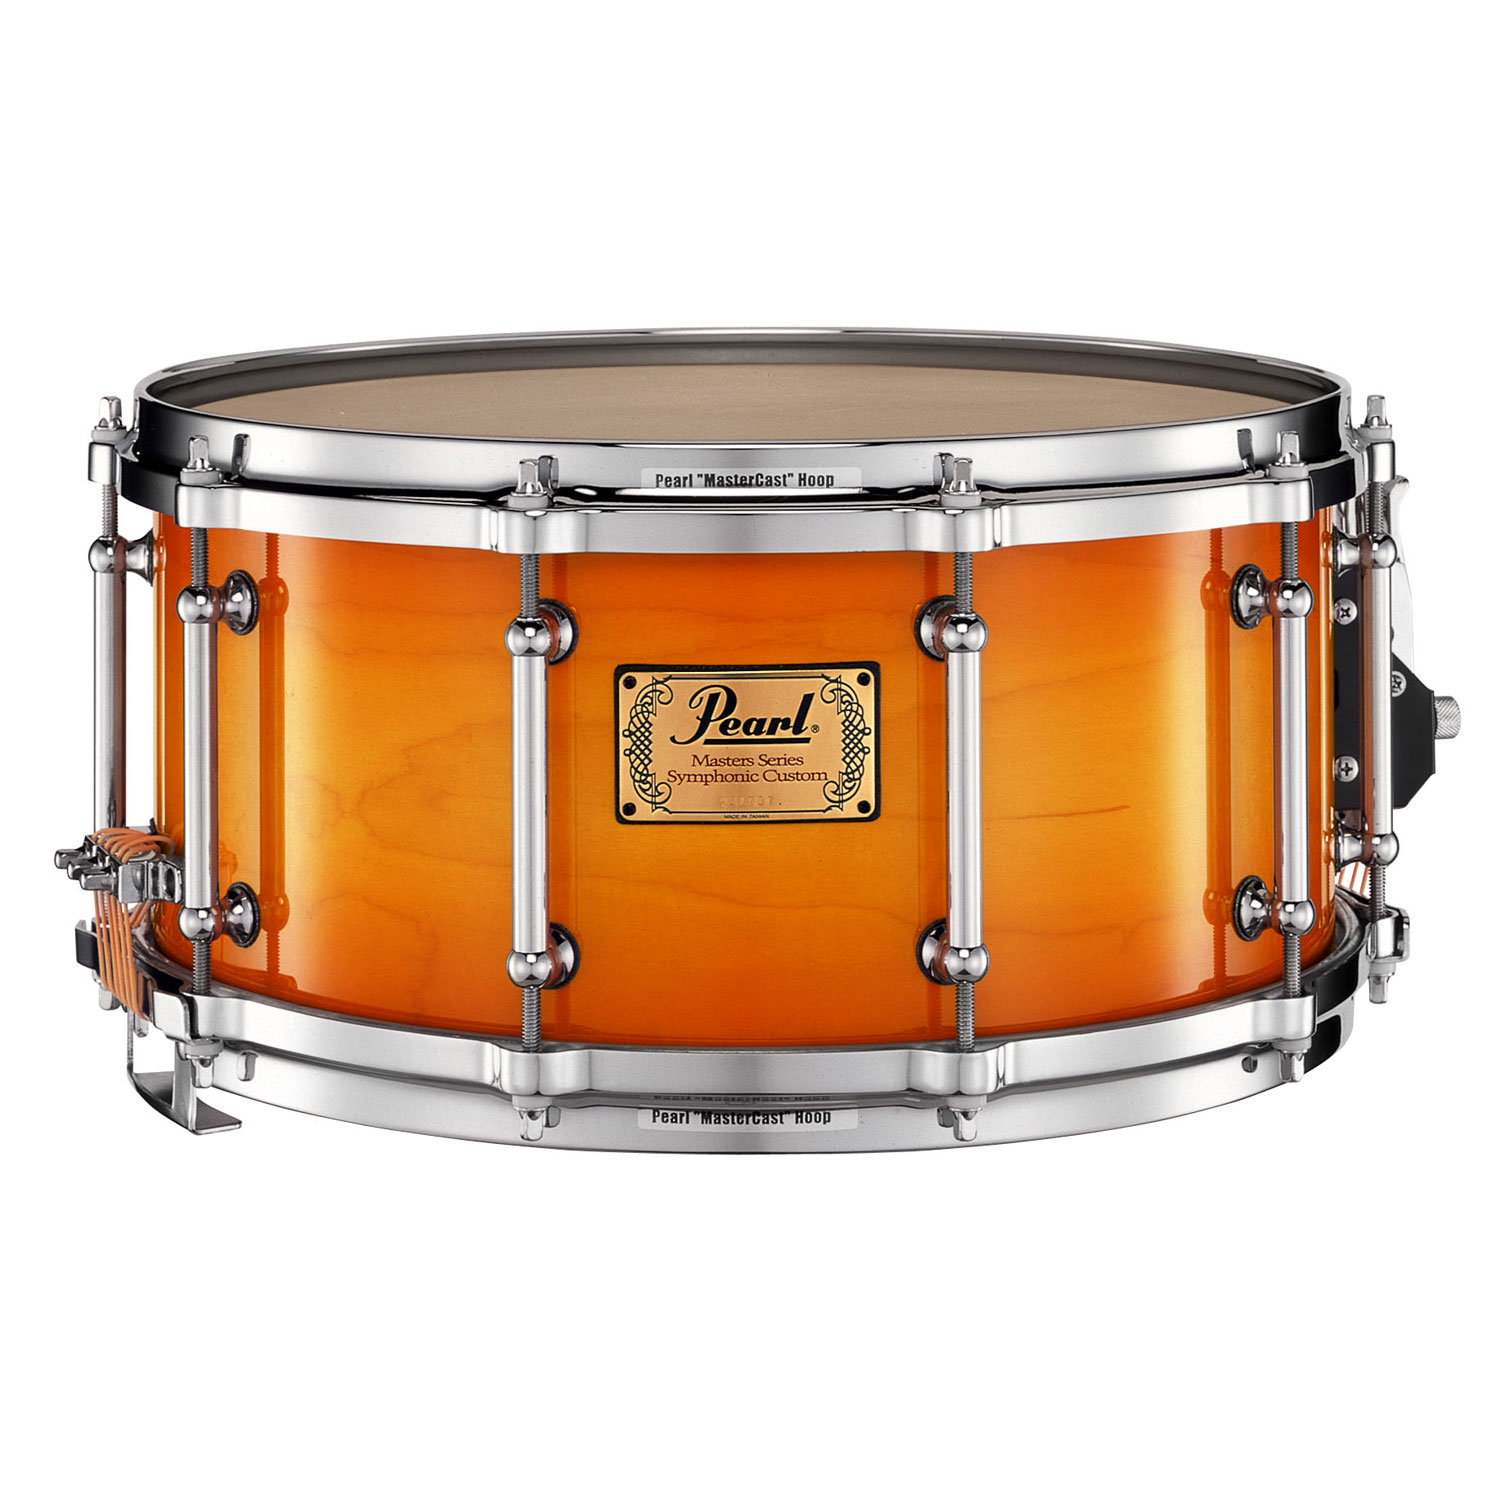 "Pearl 14"" x 6.5"" Masters Symphonic 6-Ply Maple Concert Snare Drum in Antique Sunburst"